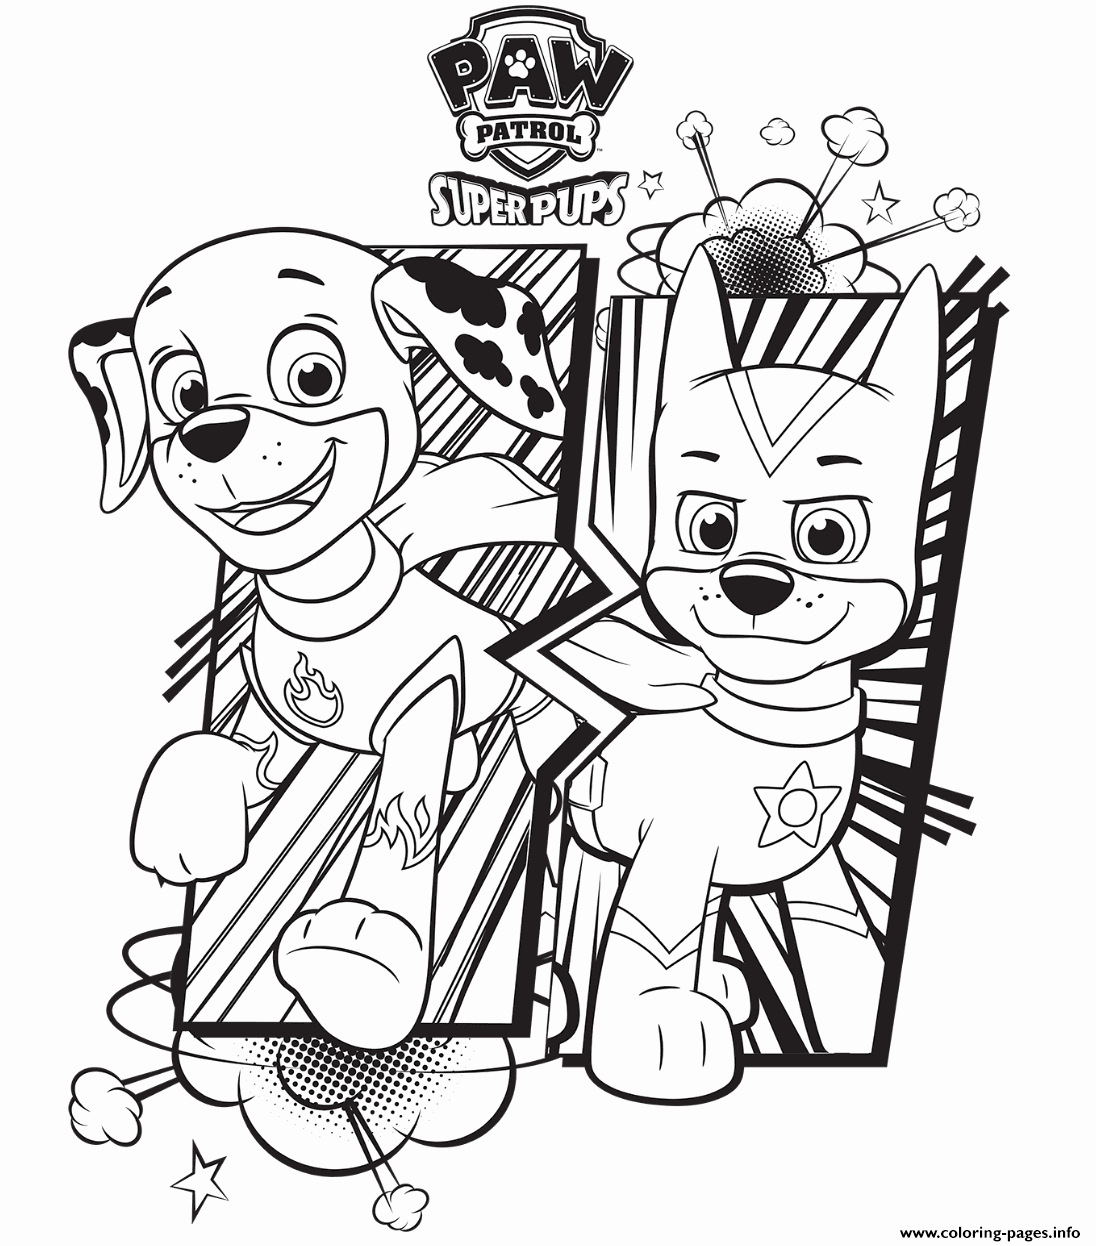 1096x1246 Paw Patrol Halloween Coloring Pages Collection Paw Patrol Coloring